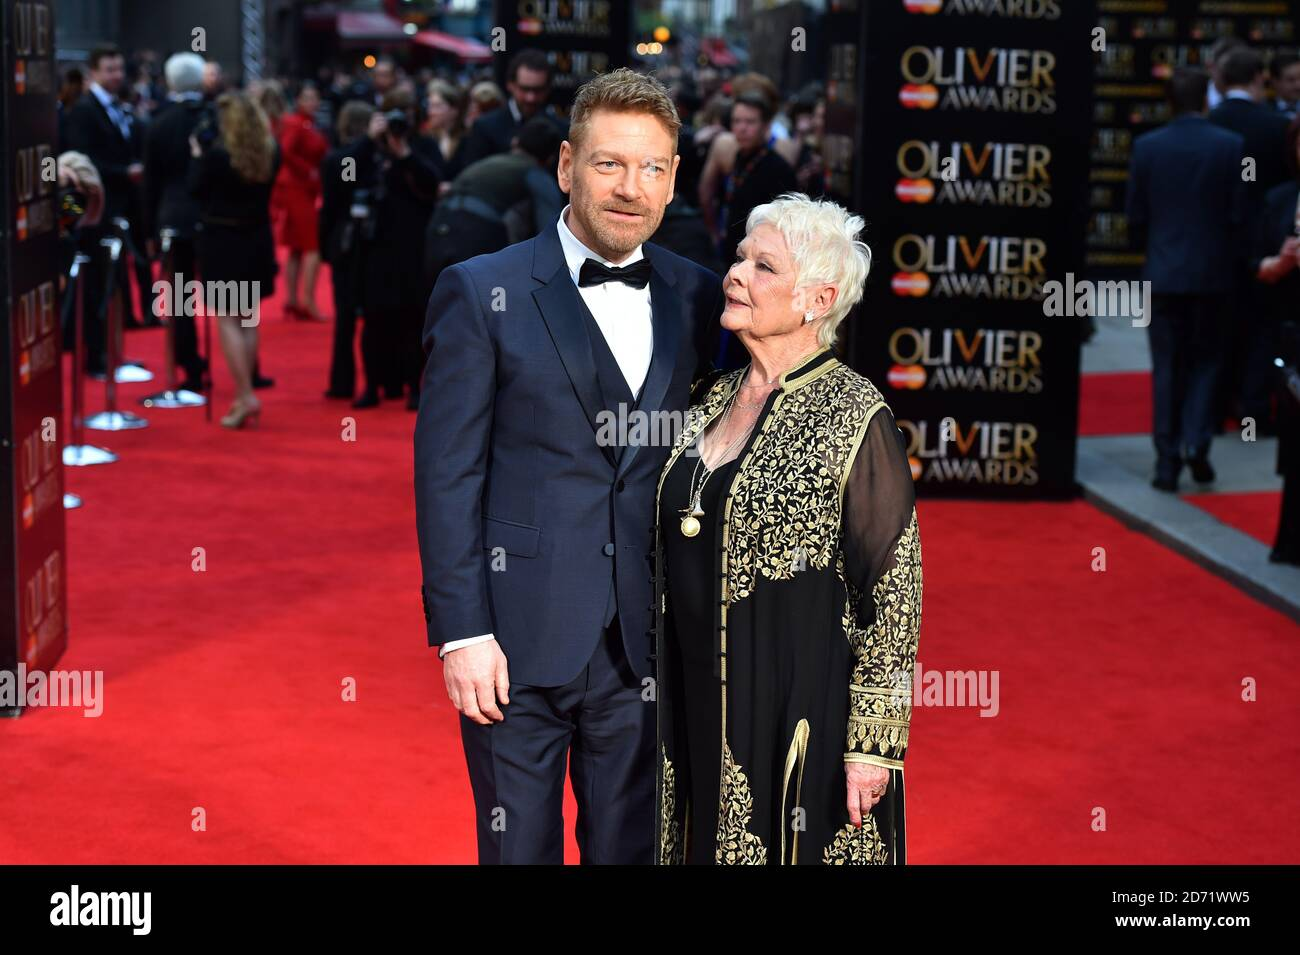 Dame Judi Dench and Kenneth Branagh attending the Olivier Award, at the Royal Opera House in London. Stock Photo